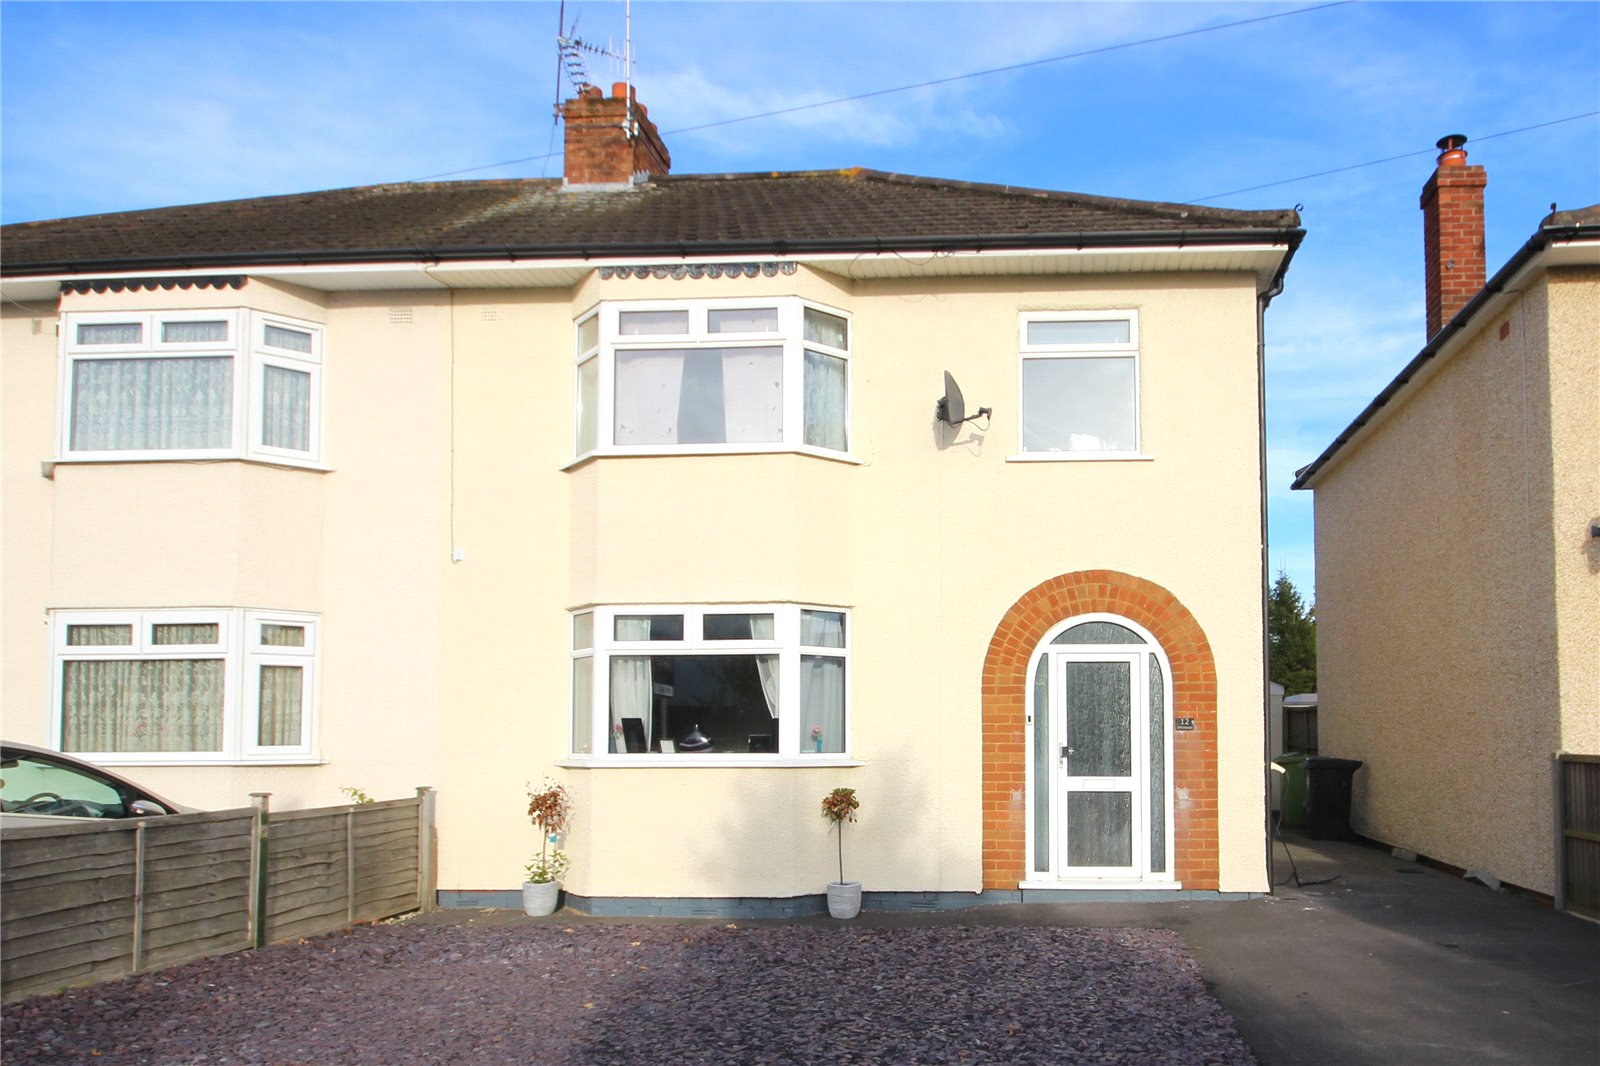 3 Bedrooms Semi Detached House for sale in Whiteleaze Westbury-on-Trym Bristol BS10